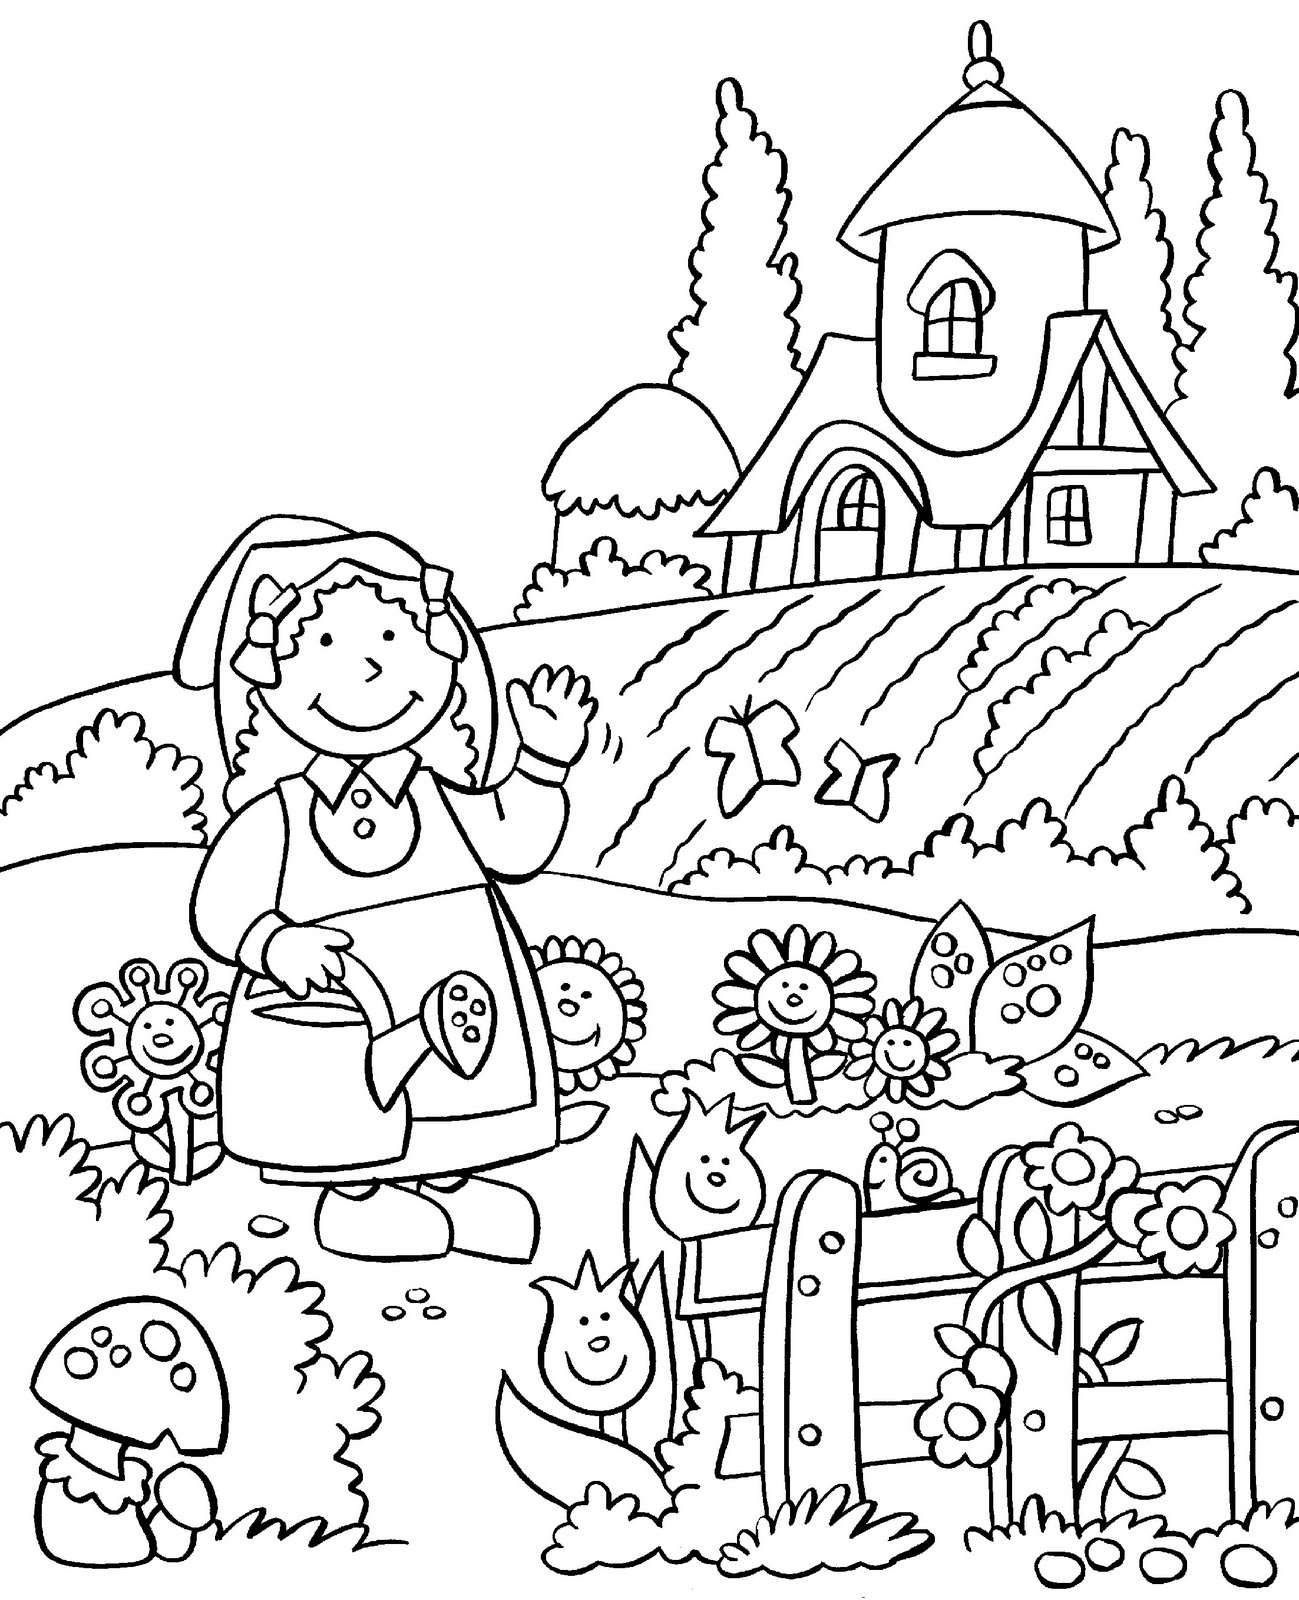 garden colouring pages for kids kids gardening coloring pages free colouring pictures to garden for pages colouring kids